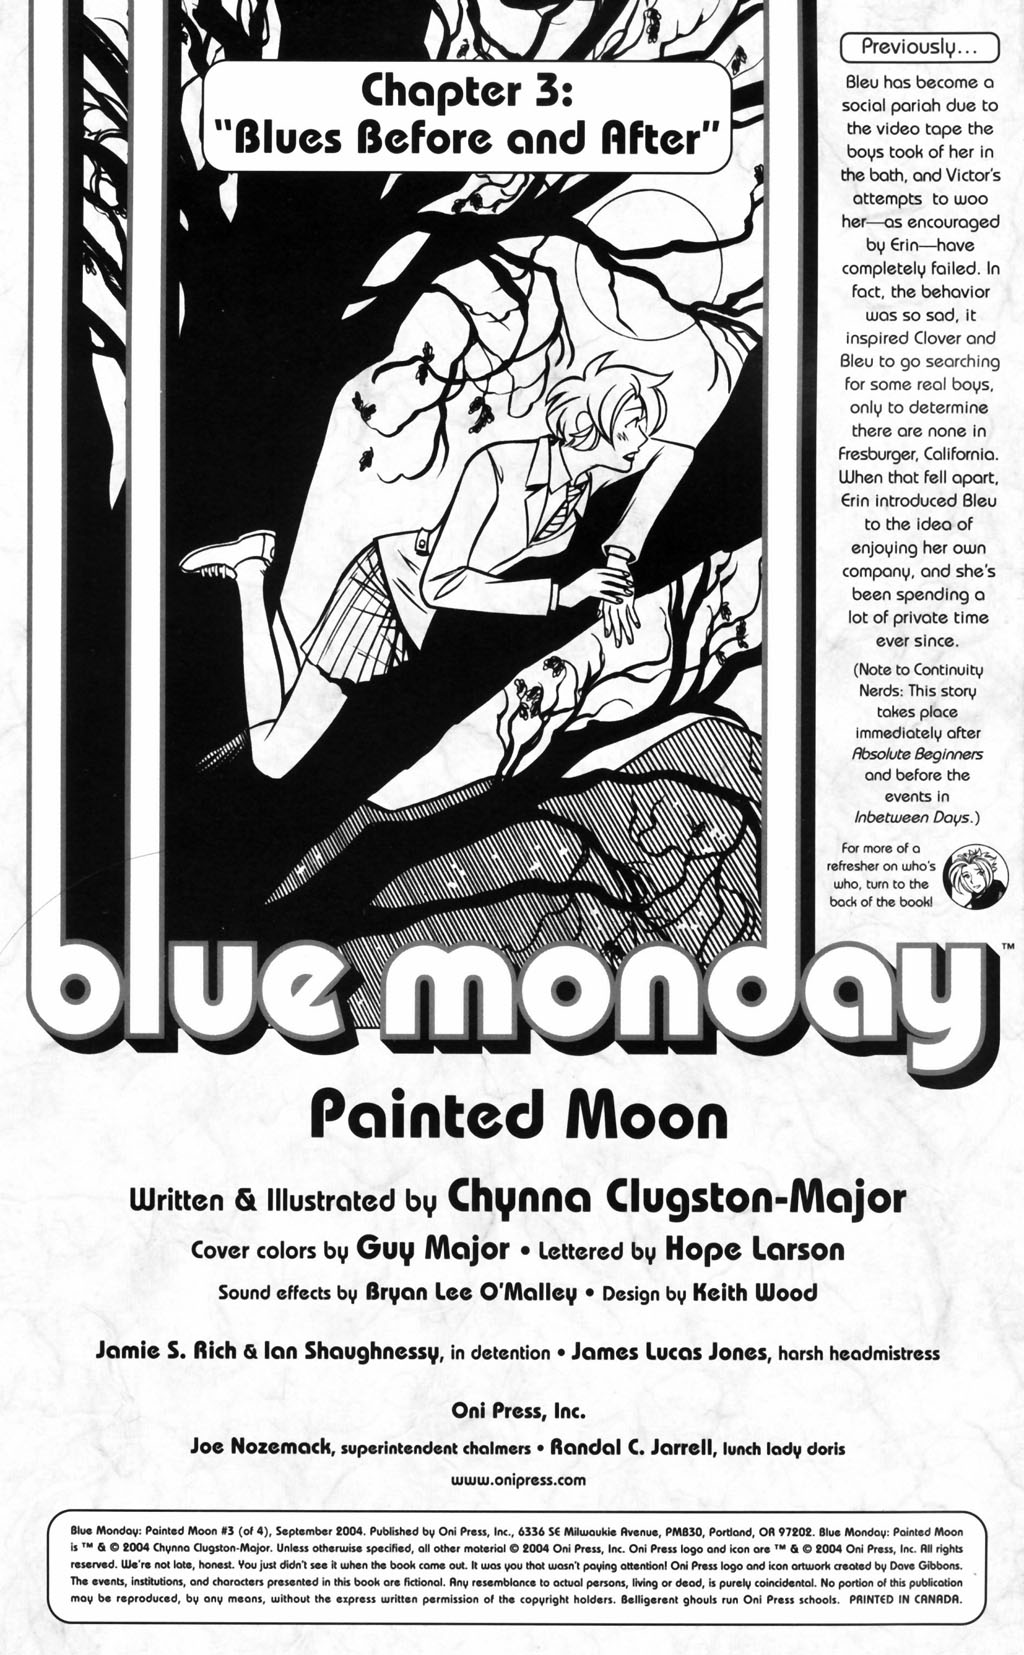 Read online Blue Monday: Painted Moon comic -  Issue #3 - 2